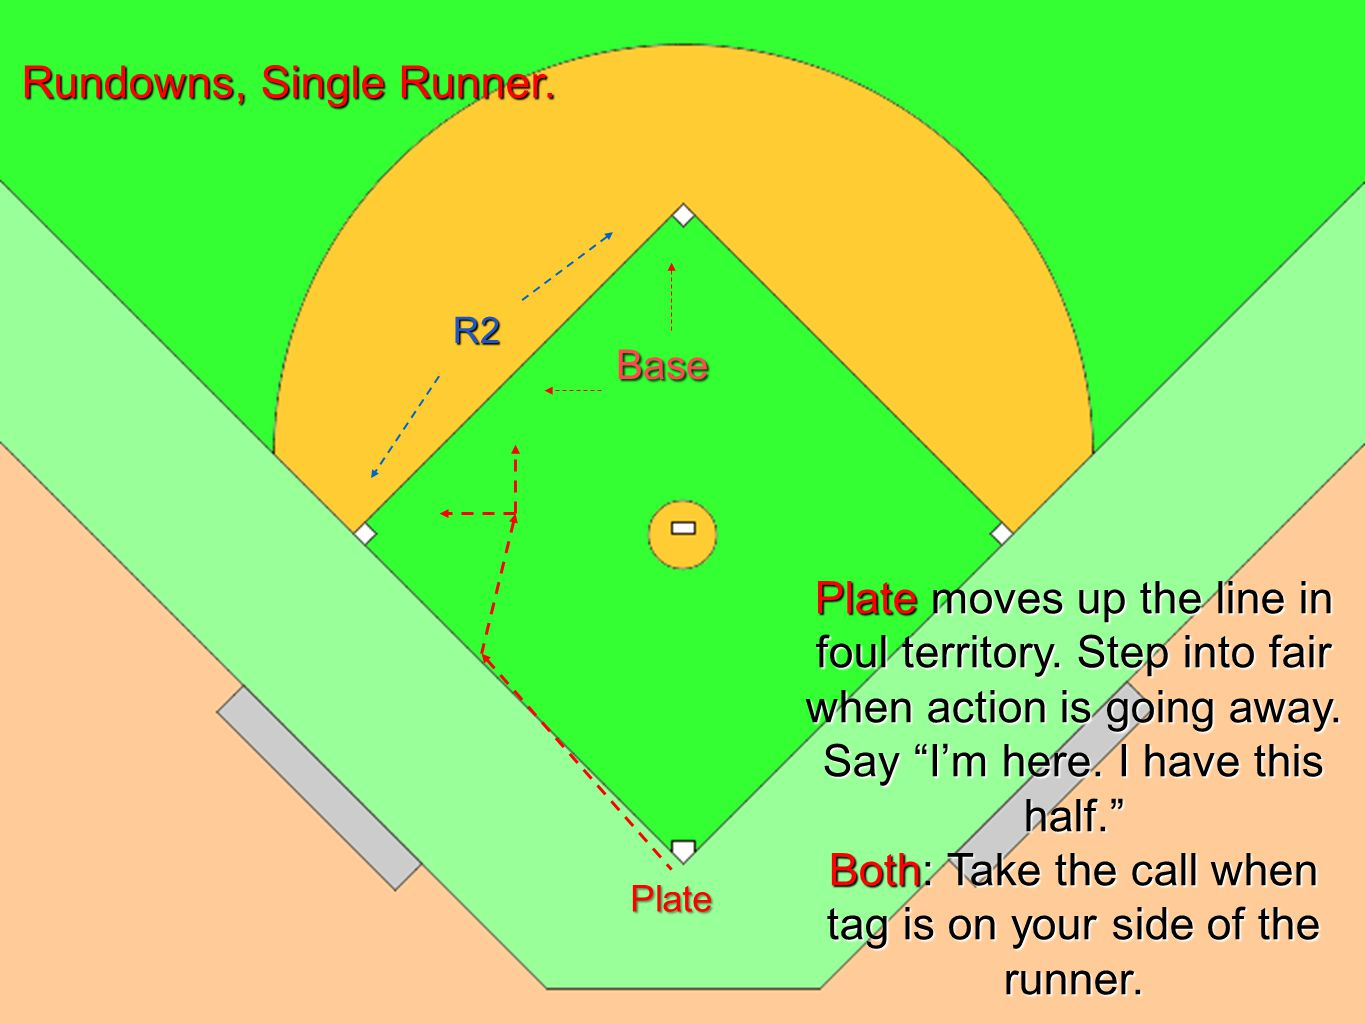 U1 move quickly up 3 rd base line -in foul ground- to assist U2.